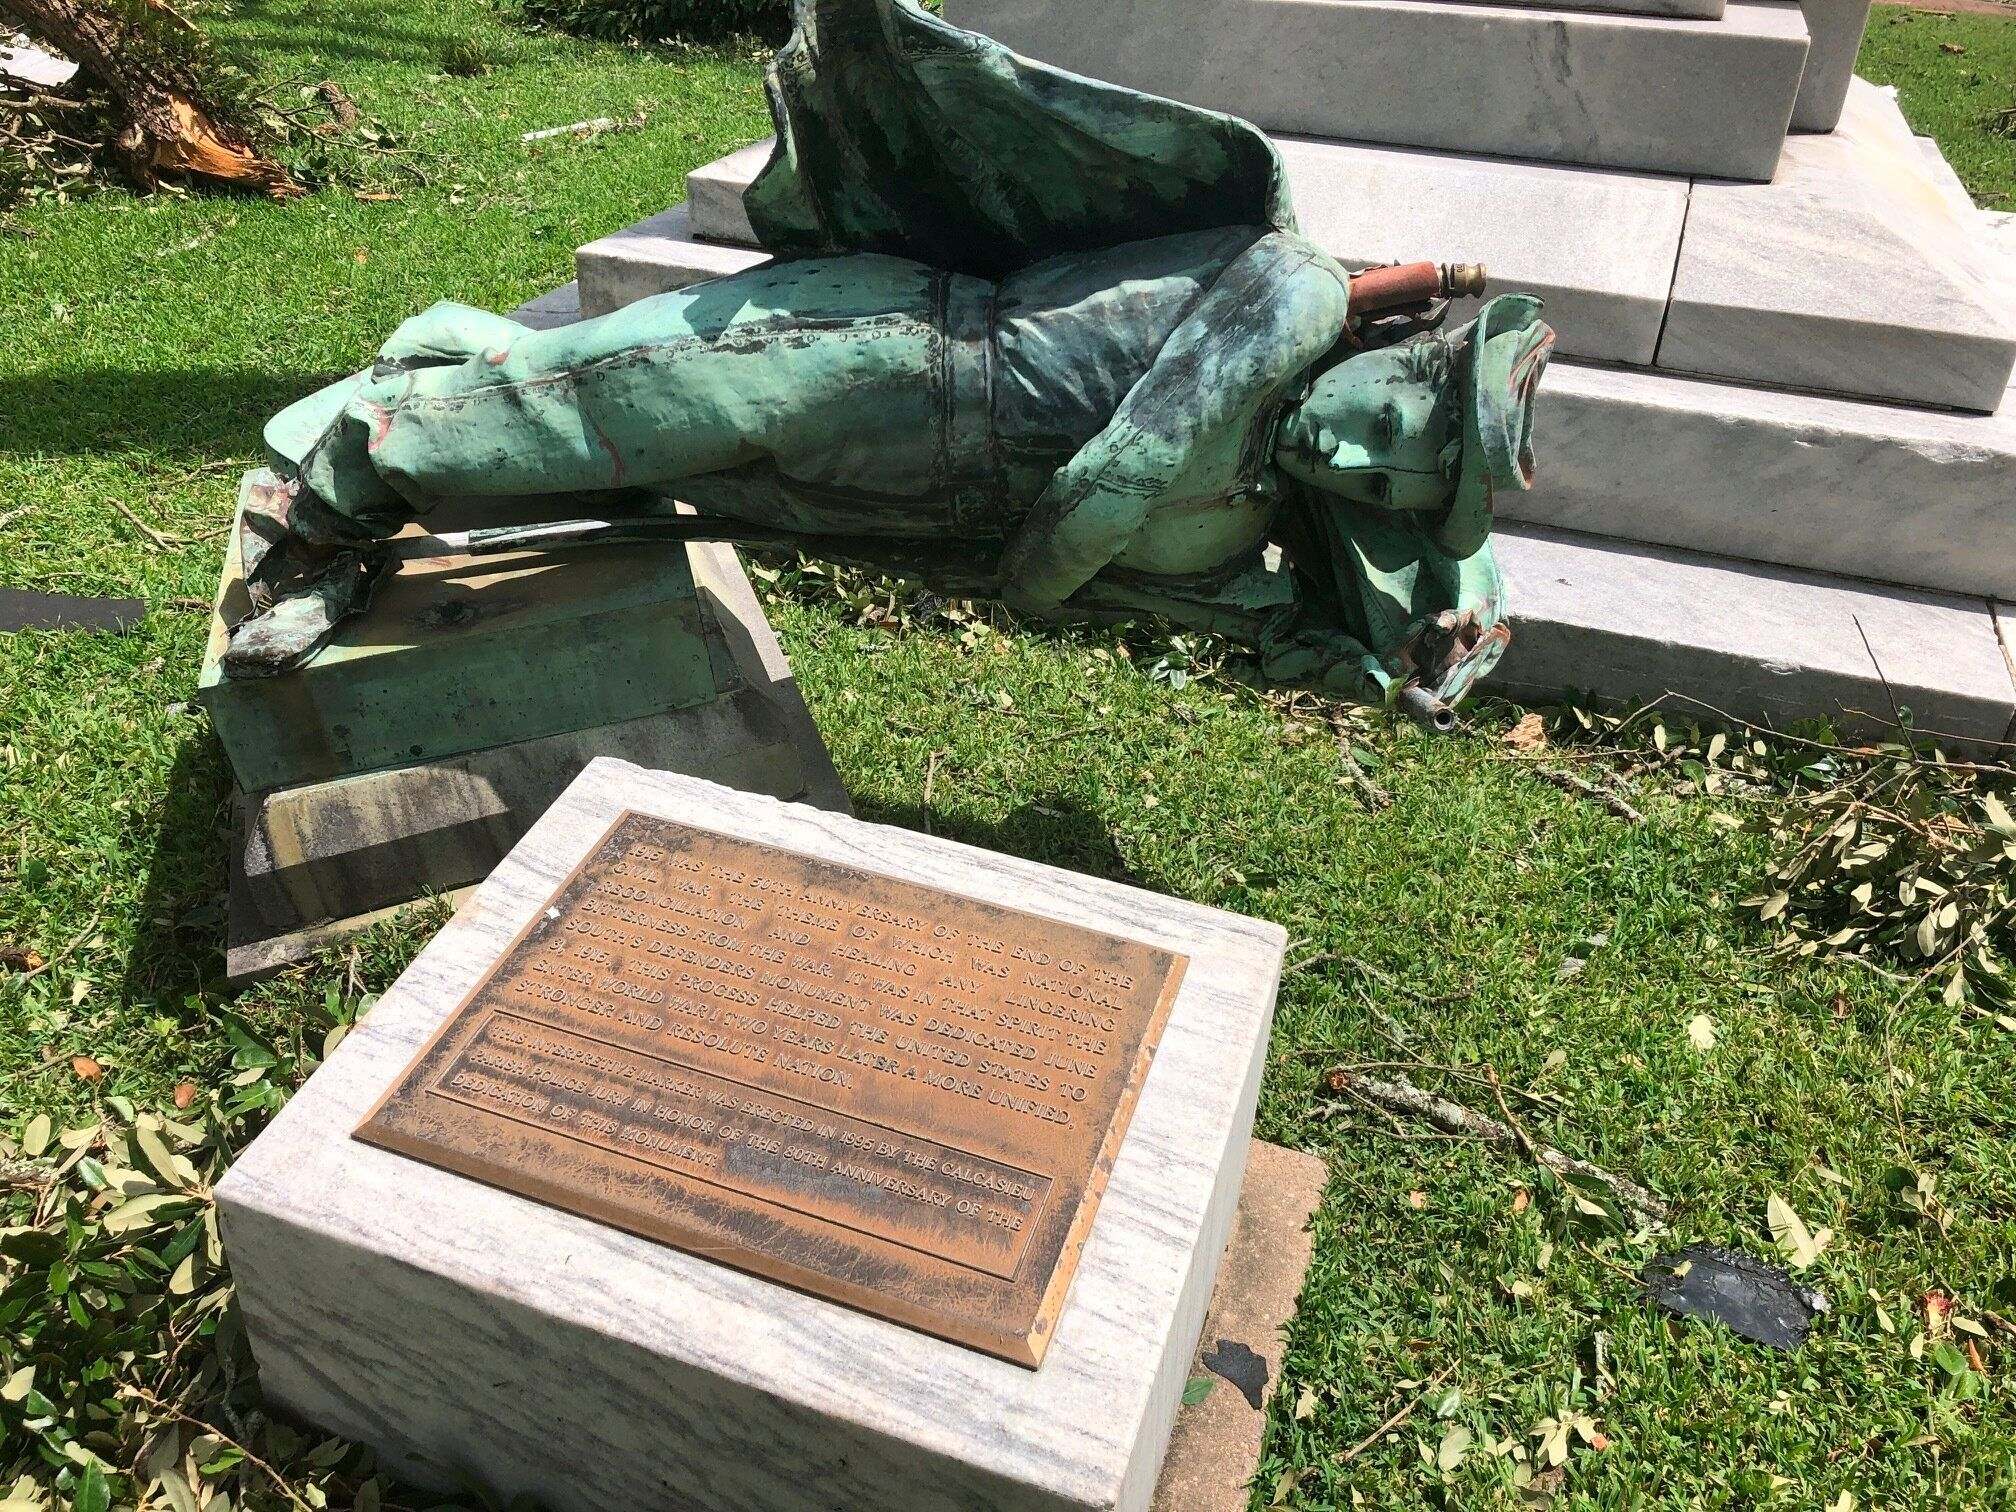 Earlier this month, parish officials voted to keep this statue, called The South's Defenders Monument, in its place. Hurricane Laura had other ideas.